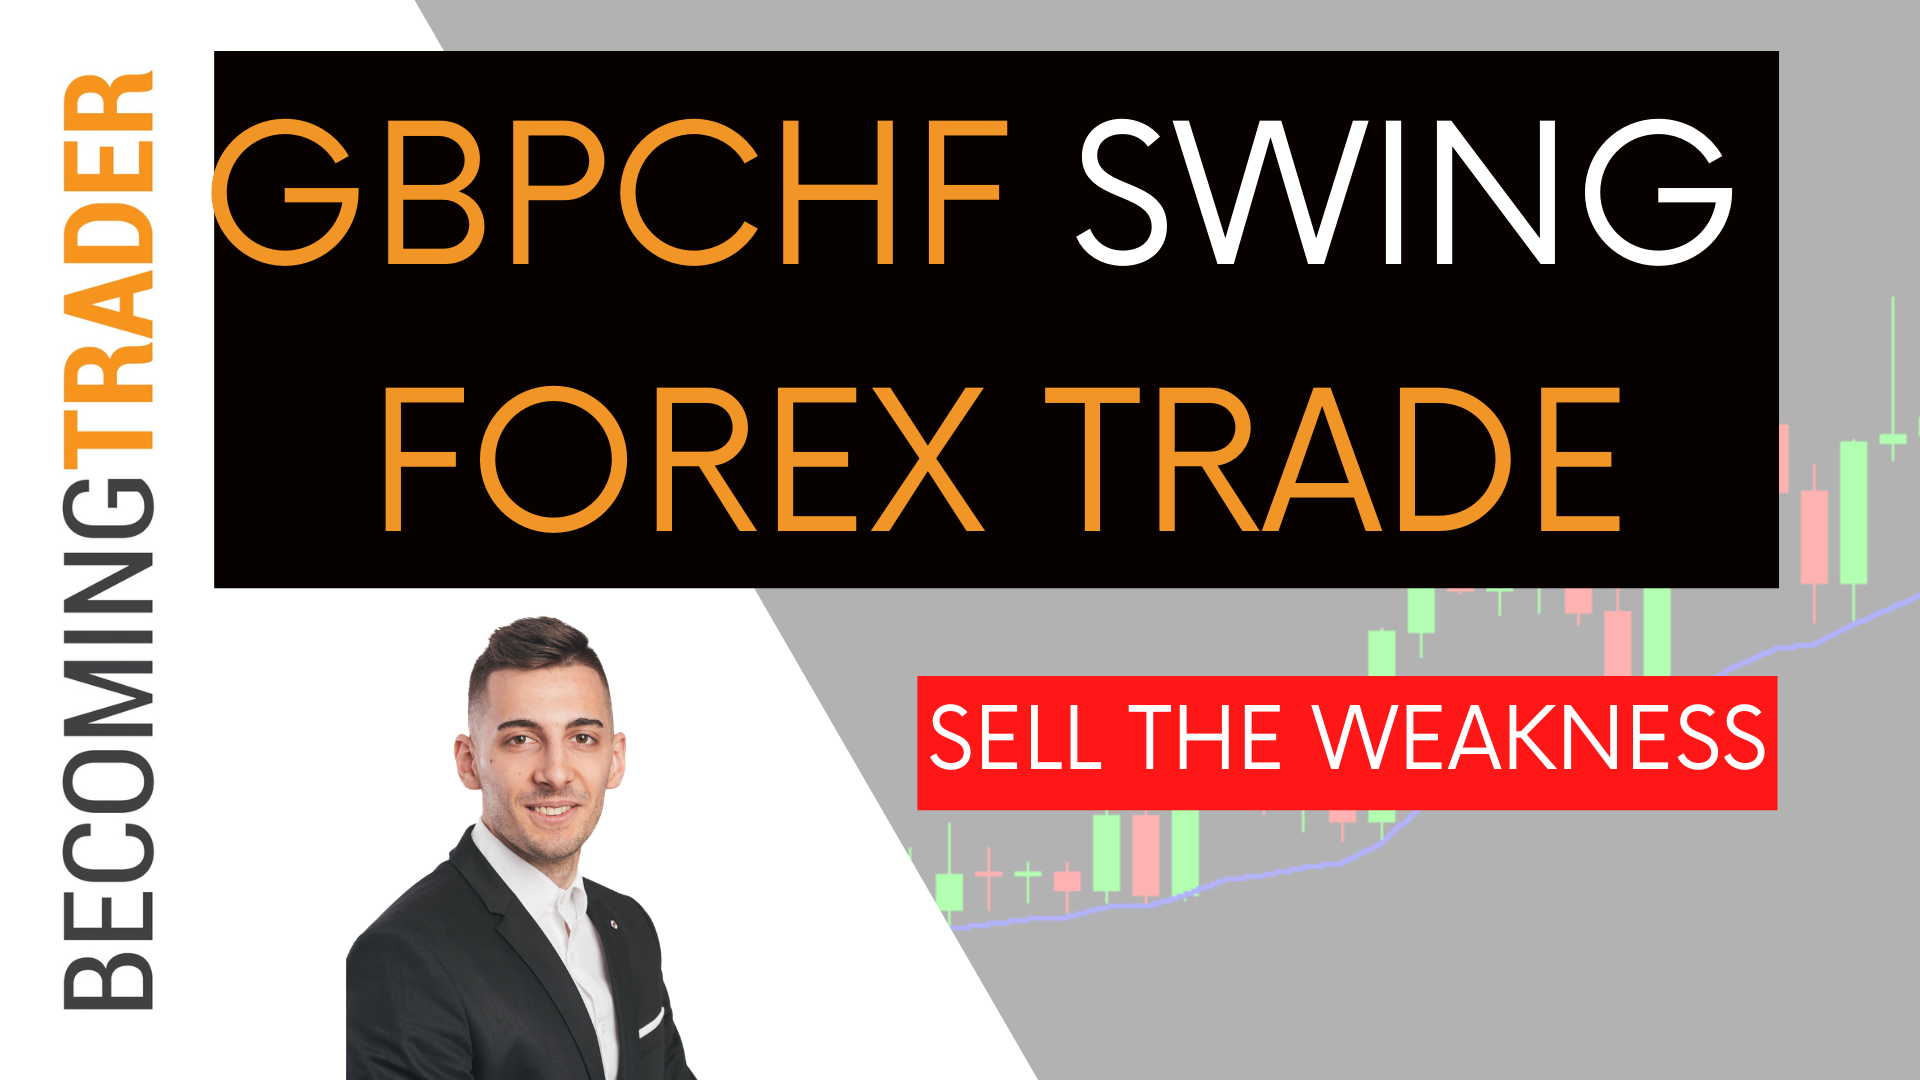 GBP/CHF Live Forex Swing Trading Idea | Selling the Weakness